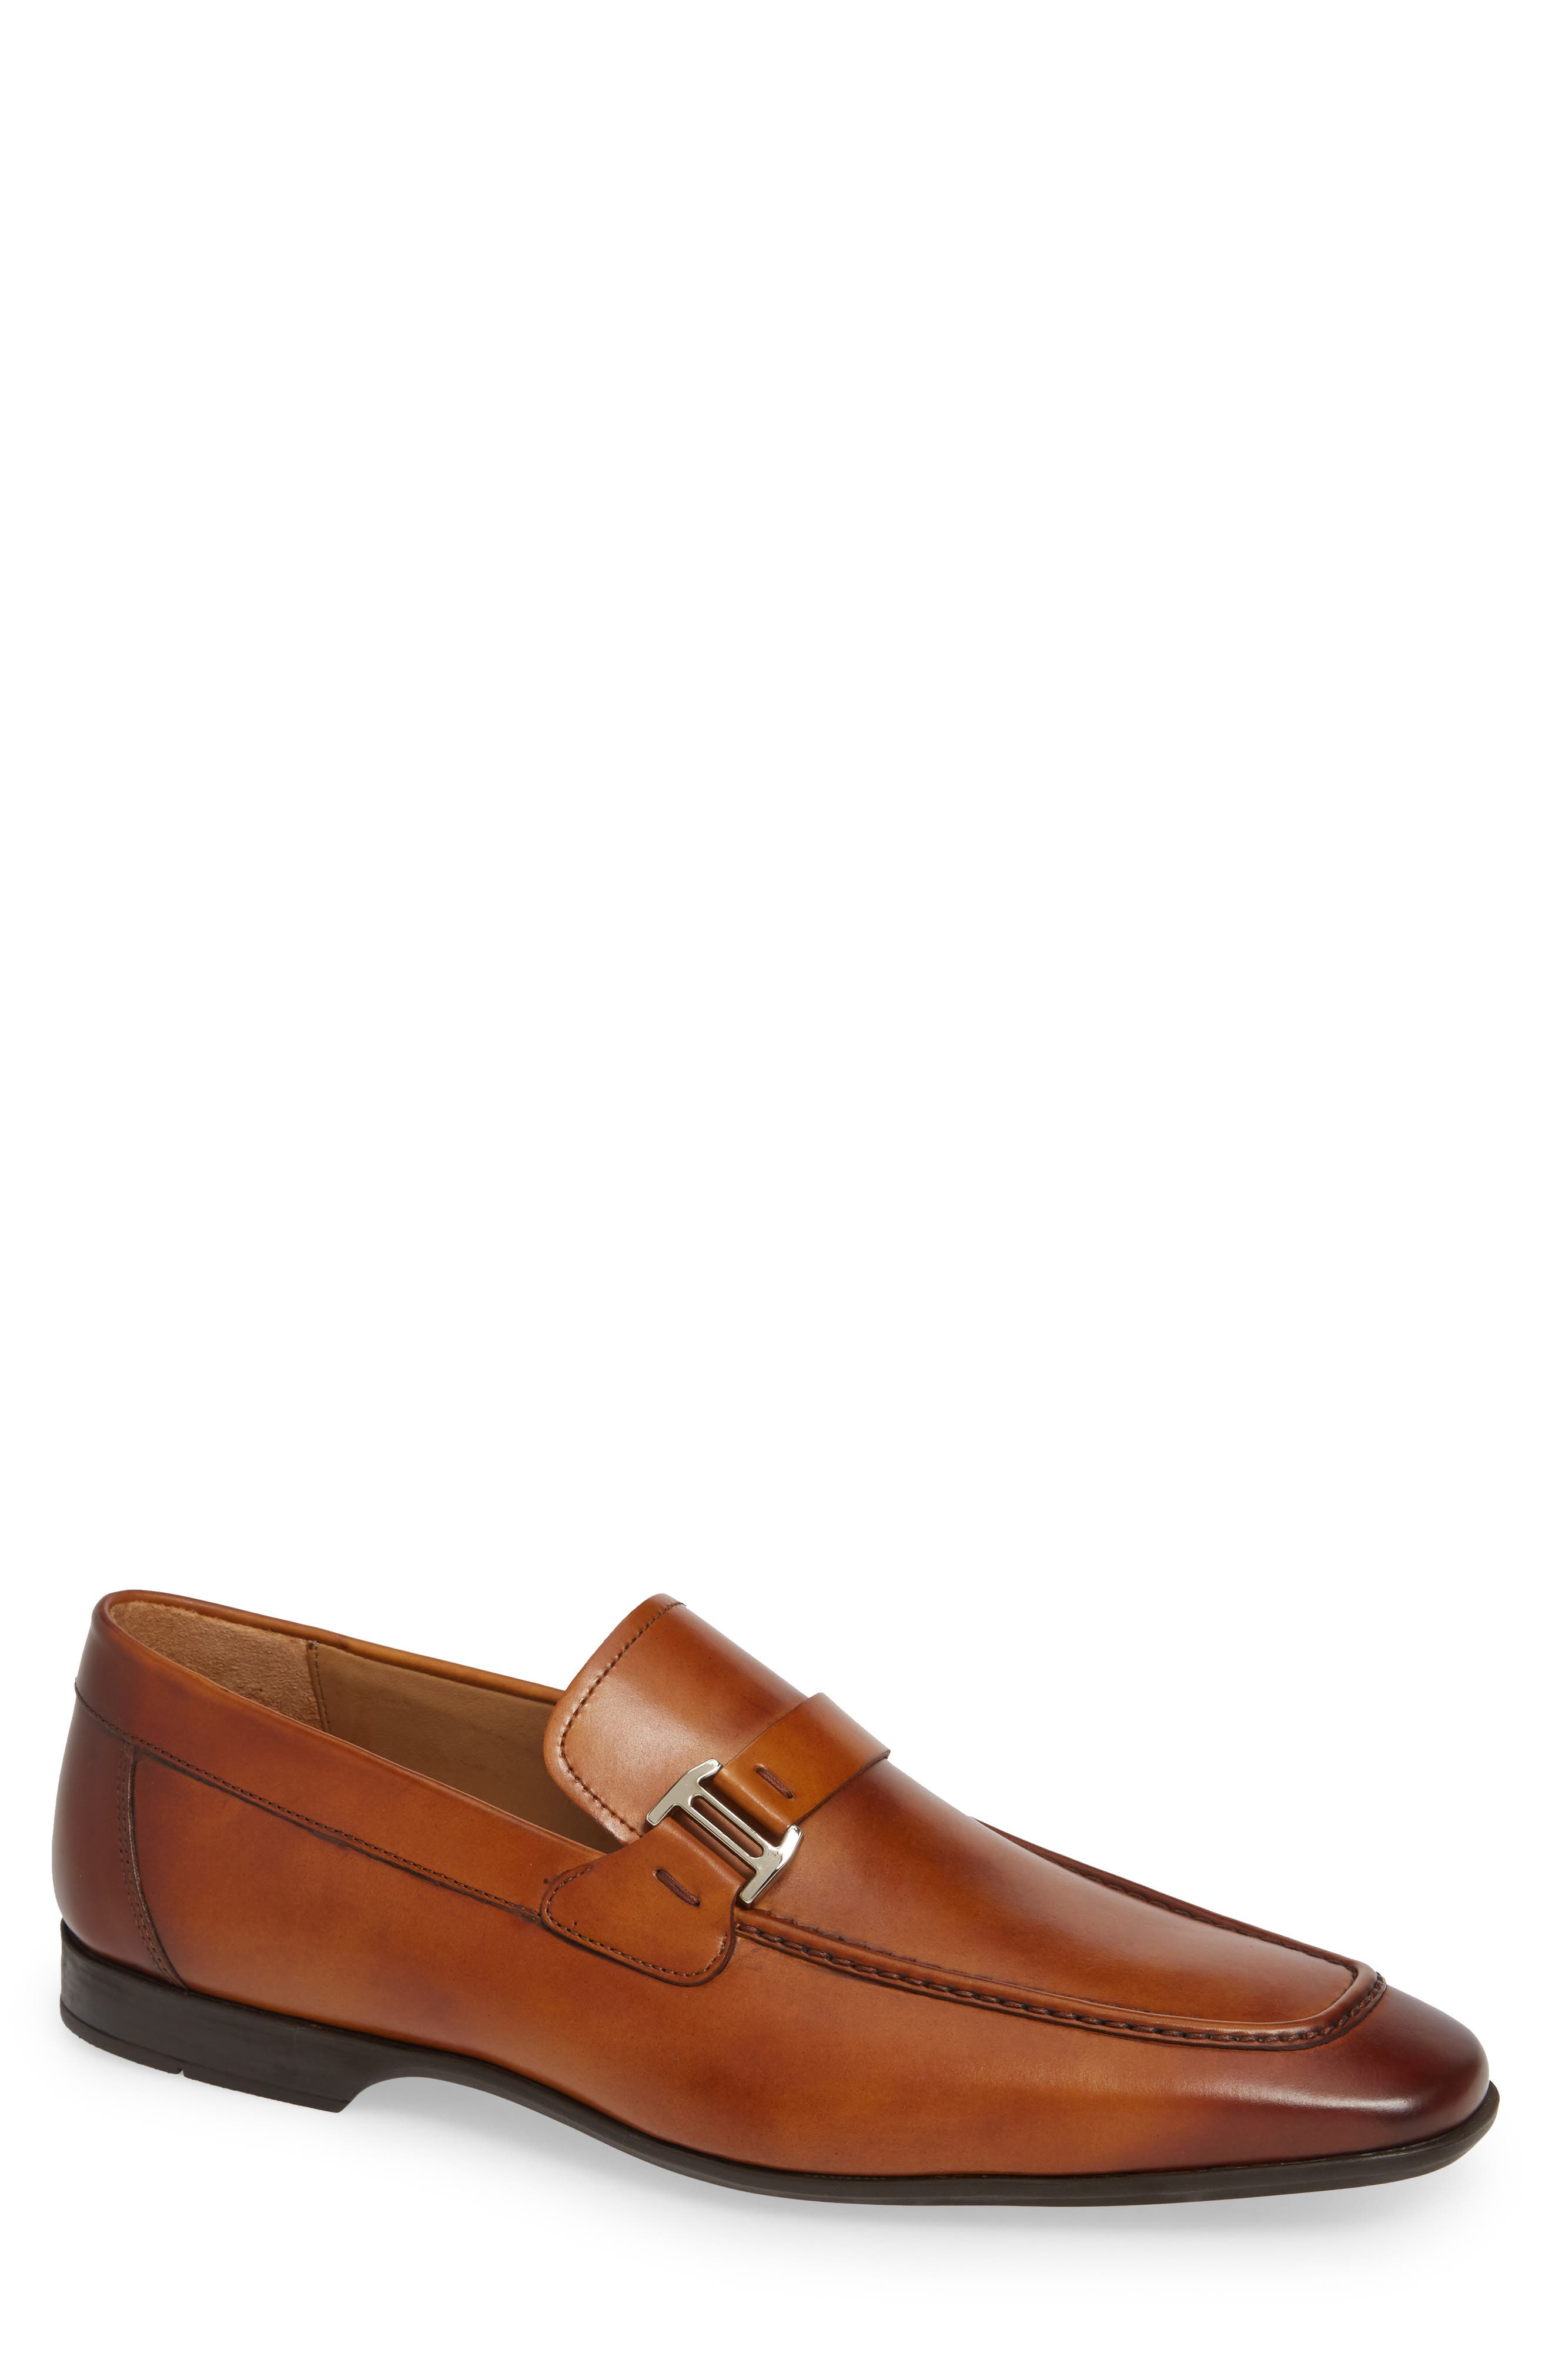 'Lino' Loafer,                         Main,                         color, BROWN LEATHER